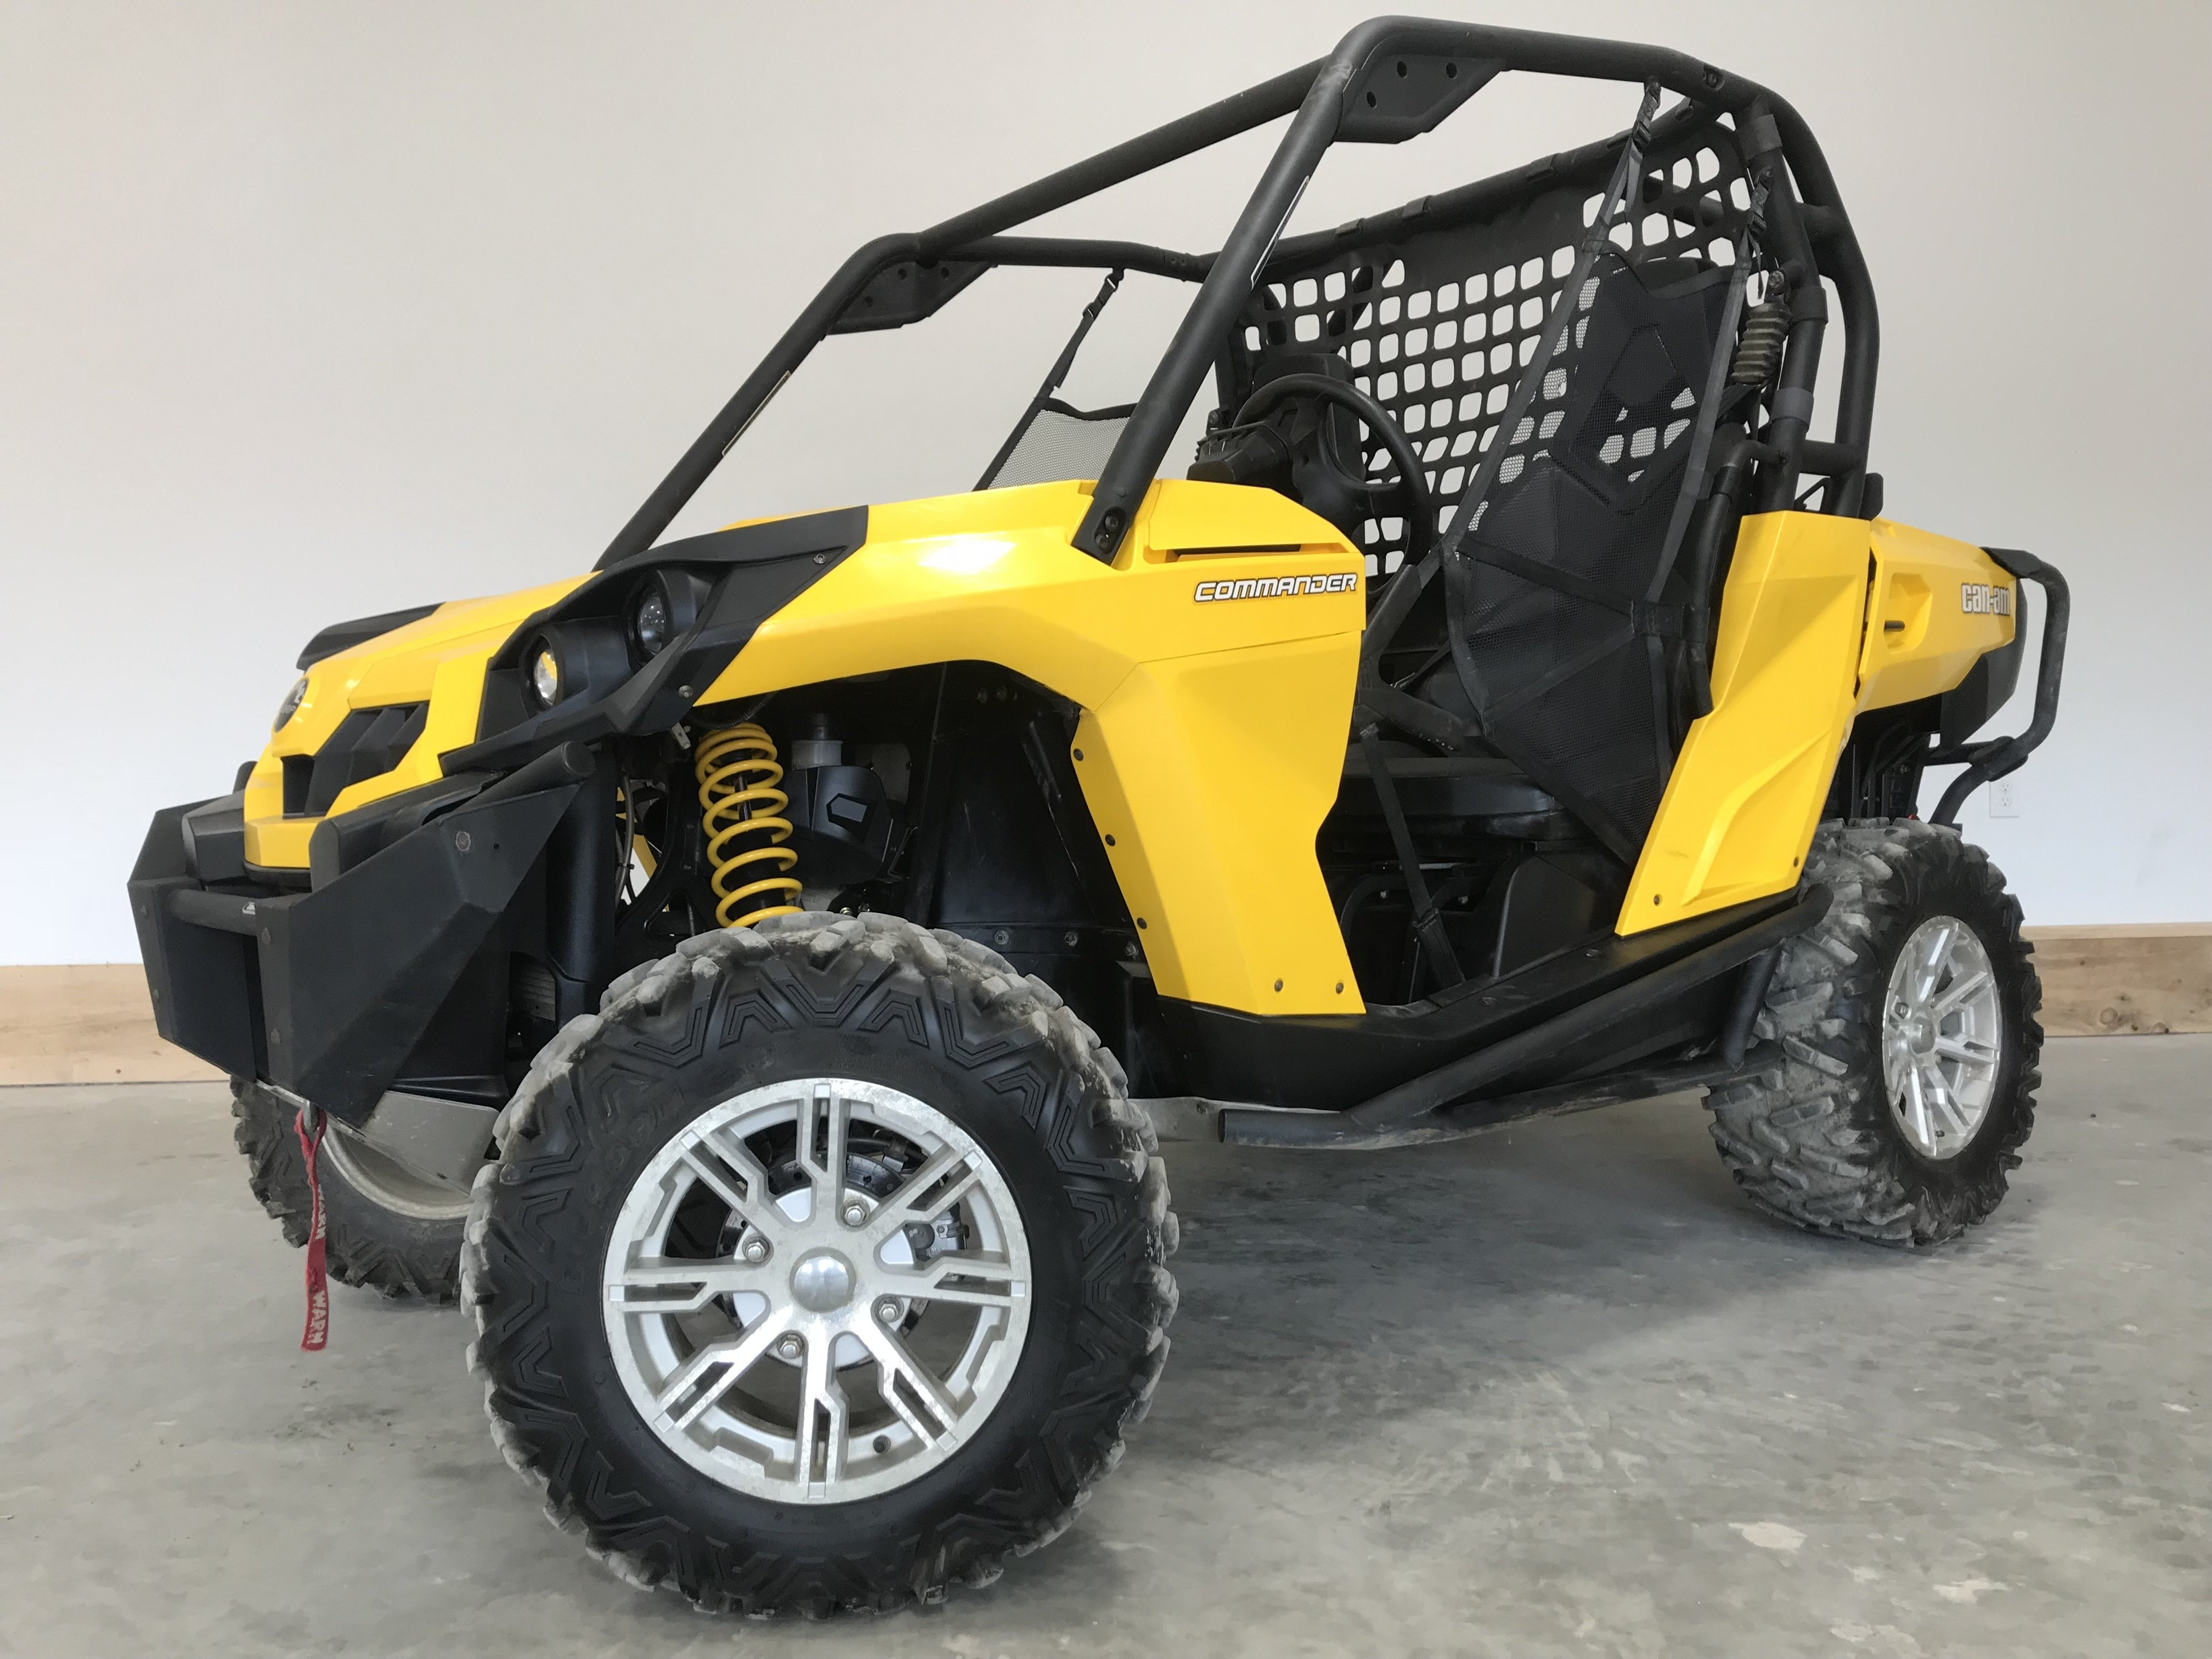 2013 Can-Am Commander 800R DPS - Low Miles 79541